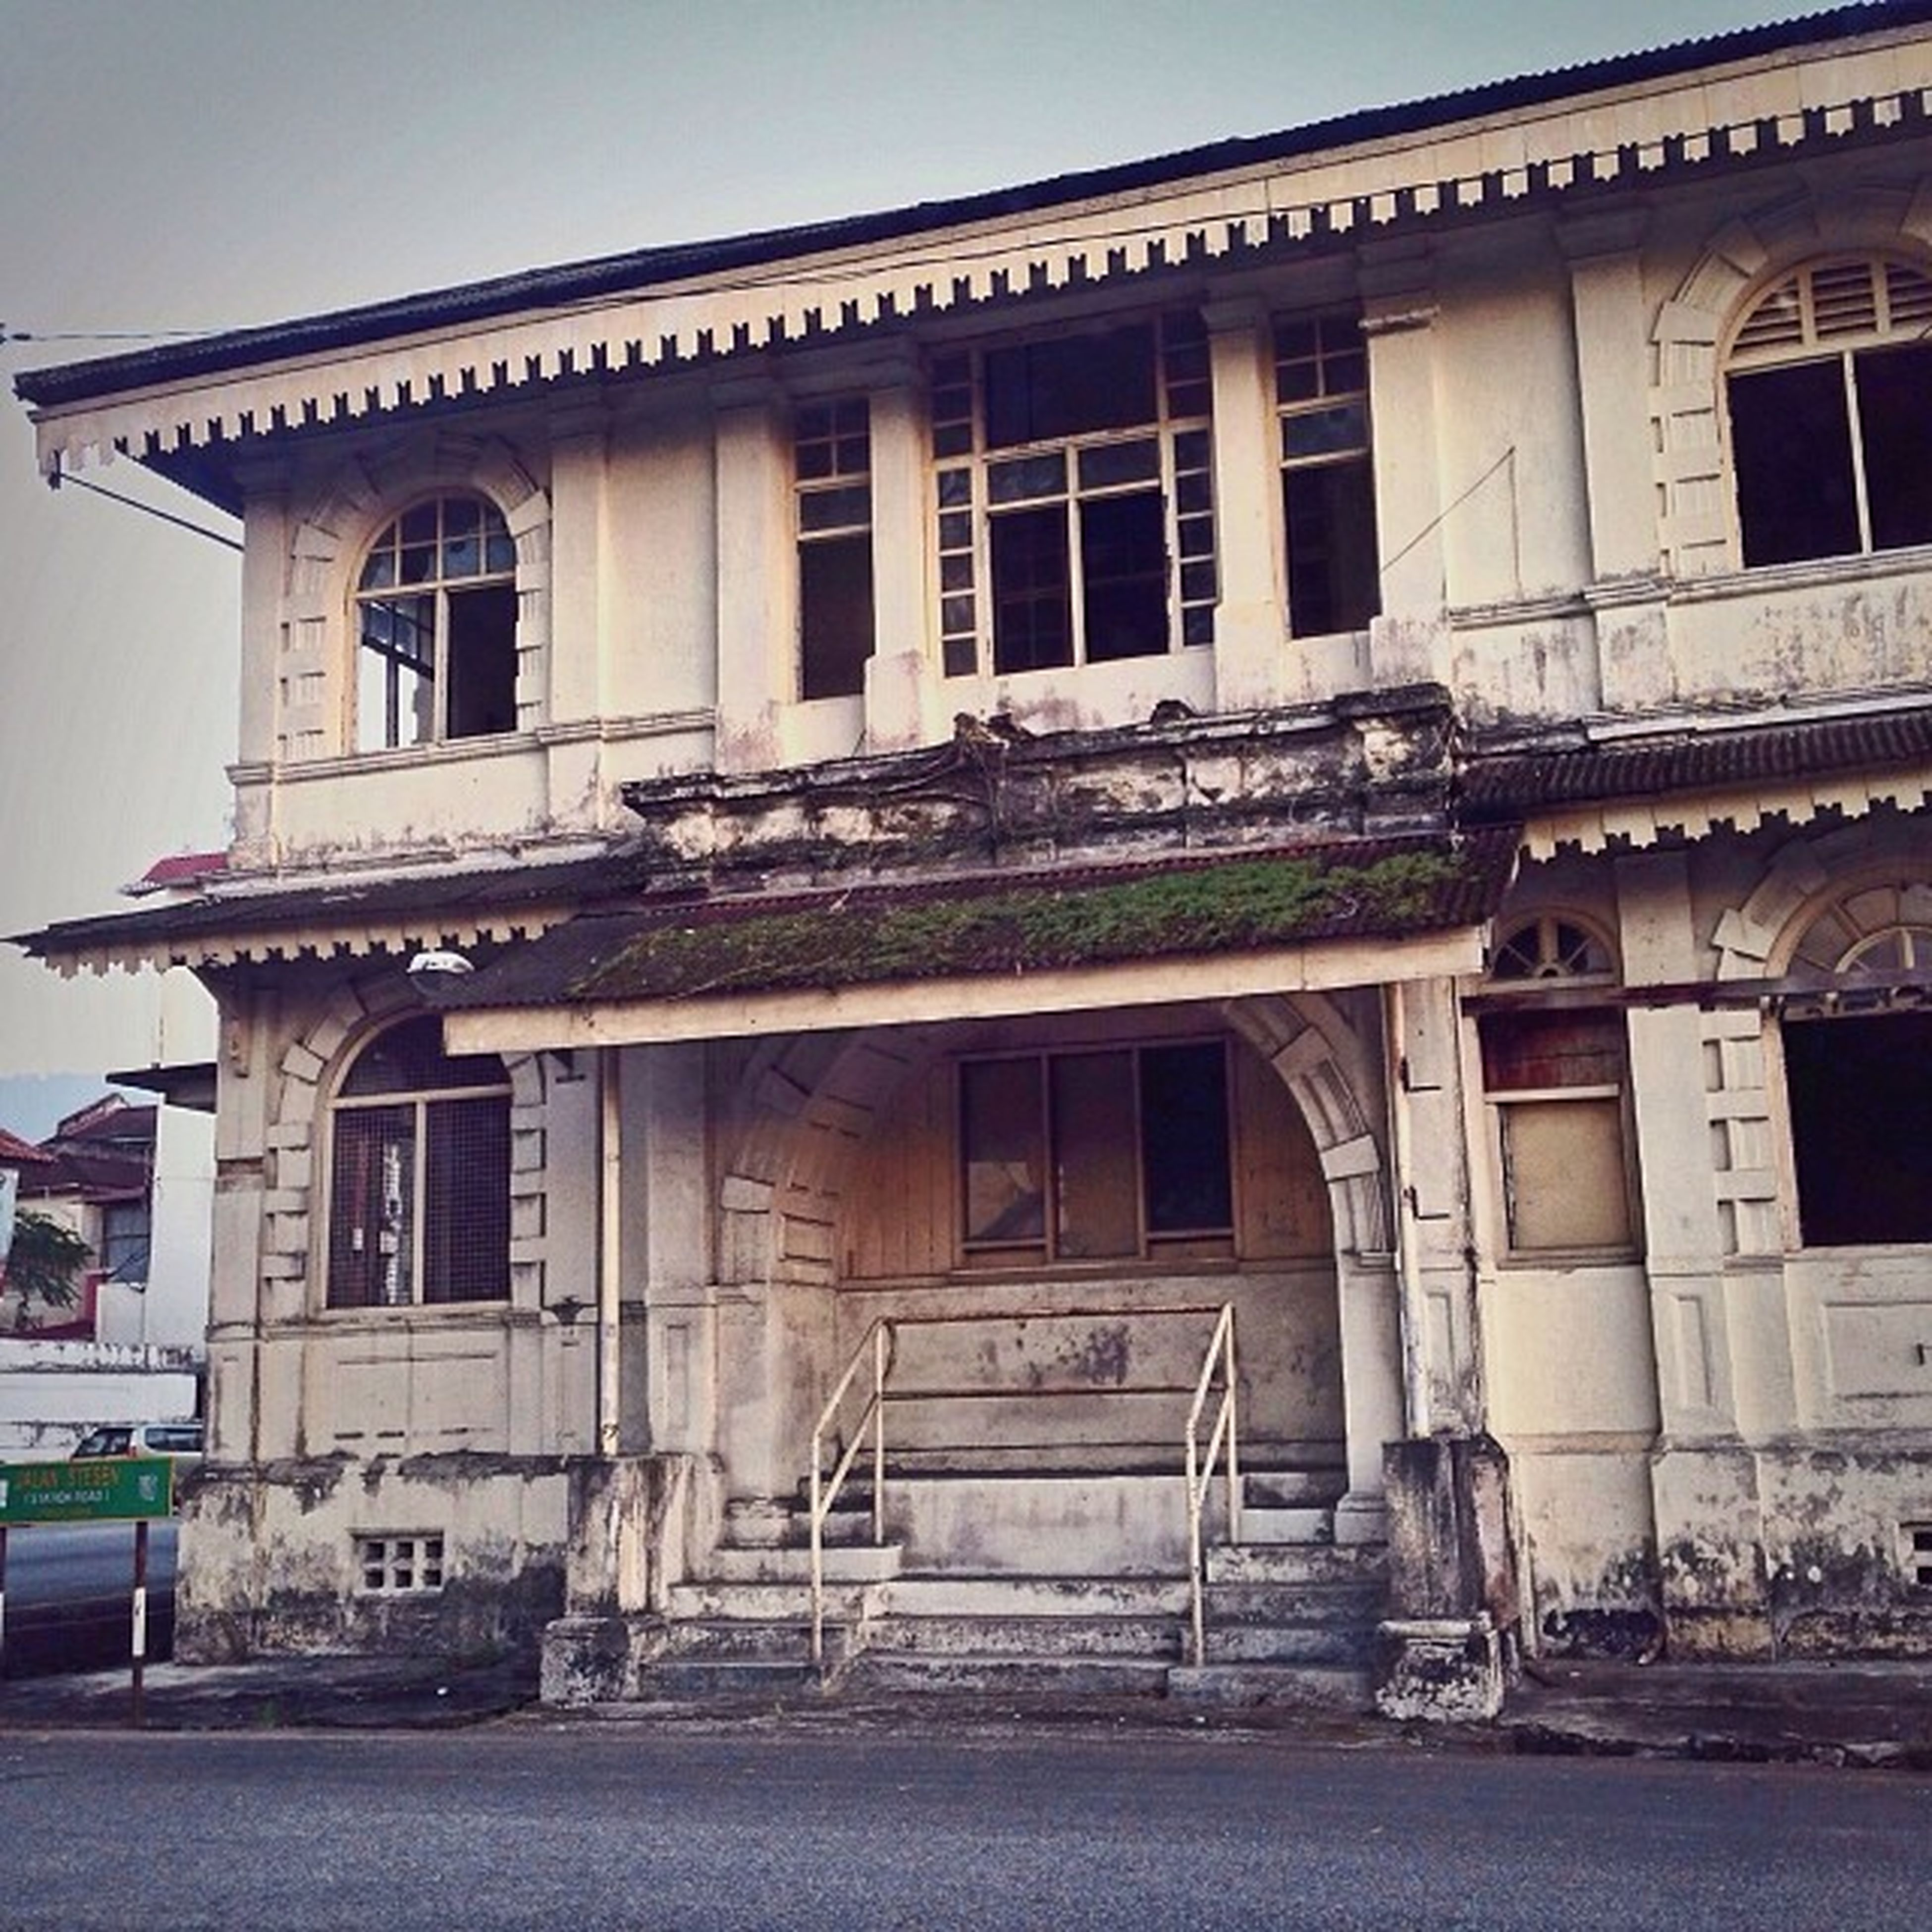 architecture, built structure, building exterior, old, window, abandoned, building, low angle view, history, damaged, obsolete, transportation, run-down, weathered, facade, day, outdoors, deterioration, sky, residential building